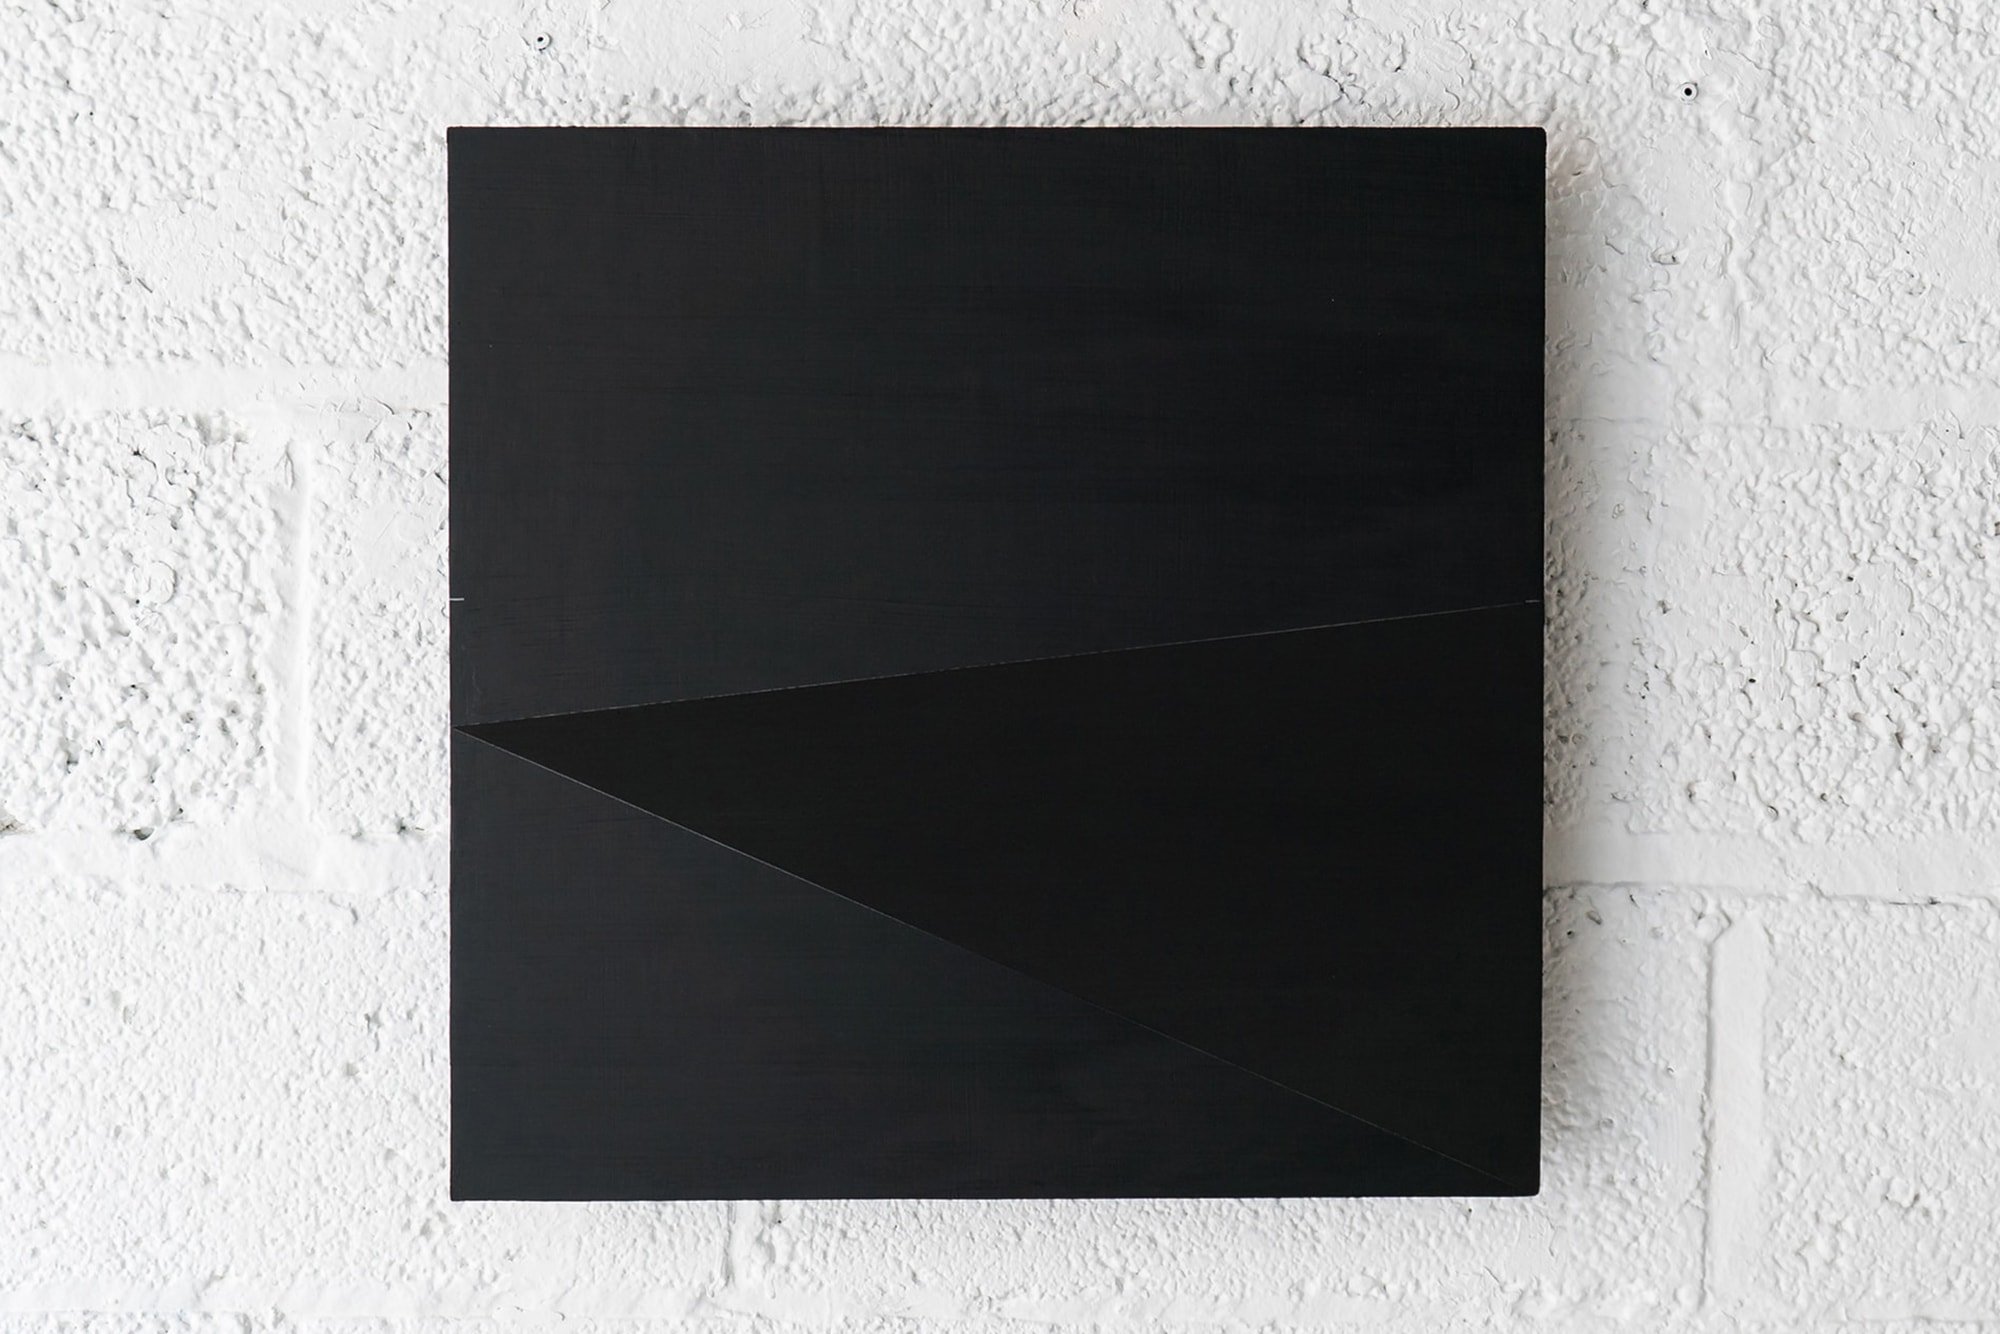 Randy Gibson: Rational Wedge 81:64 (Black) | 2017 | Gesso, Acrylic, Natural Indigo, and Graphite on Shaped MDF | 48cm x 49cm x 2″